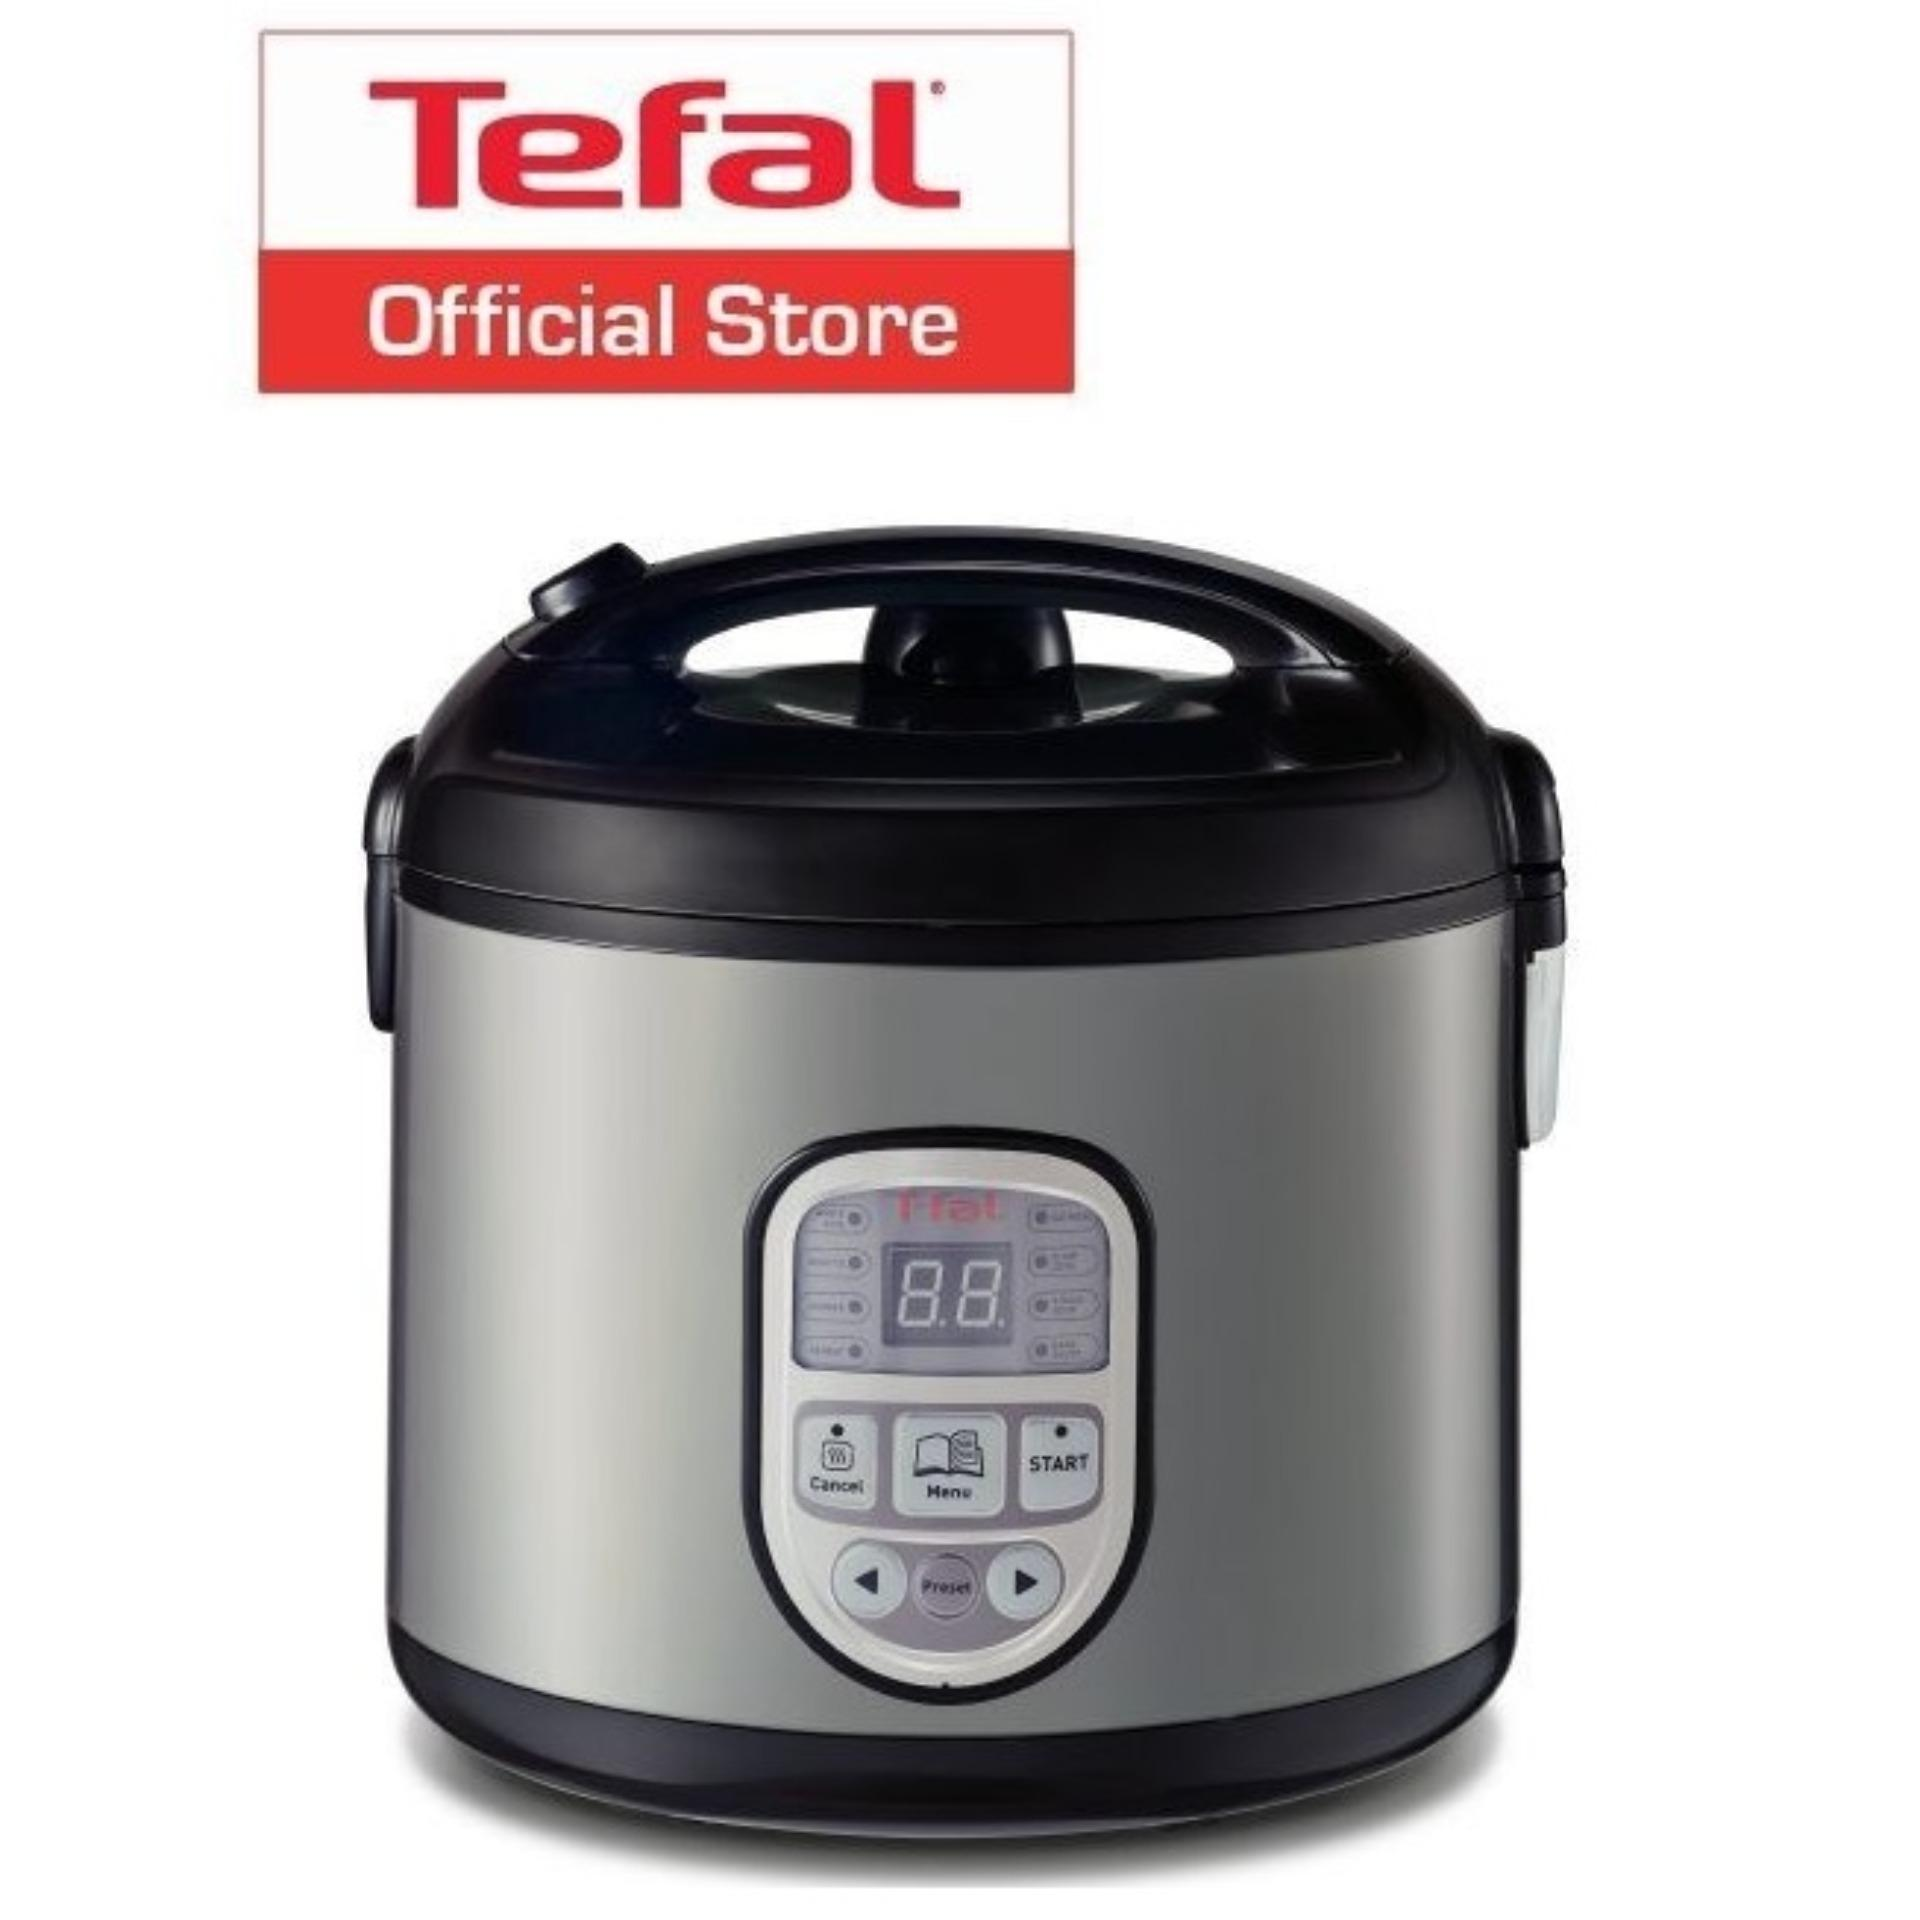 Who Sells The Cheapest Tefal Microcomputerised Rice Cooker 1 8L Rk1068 Online